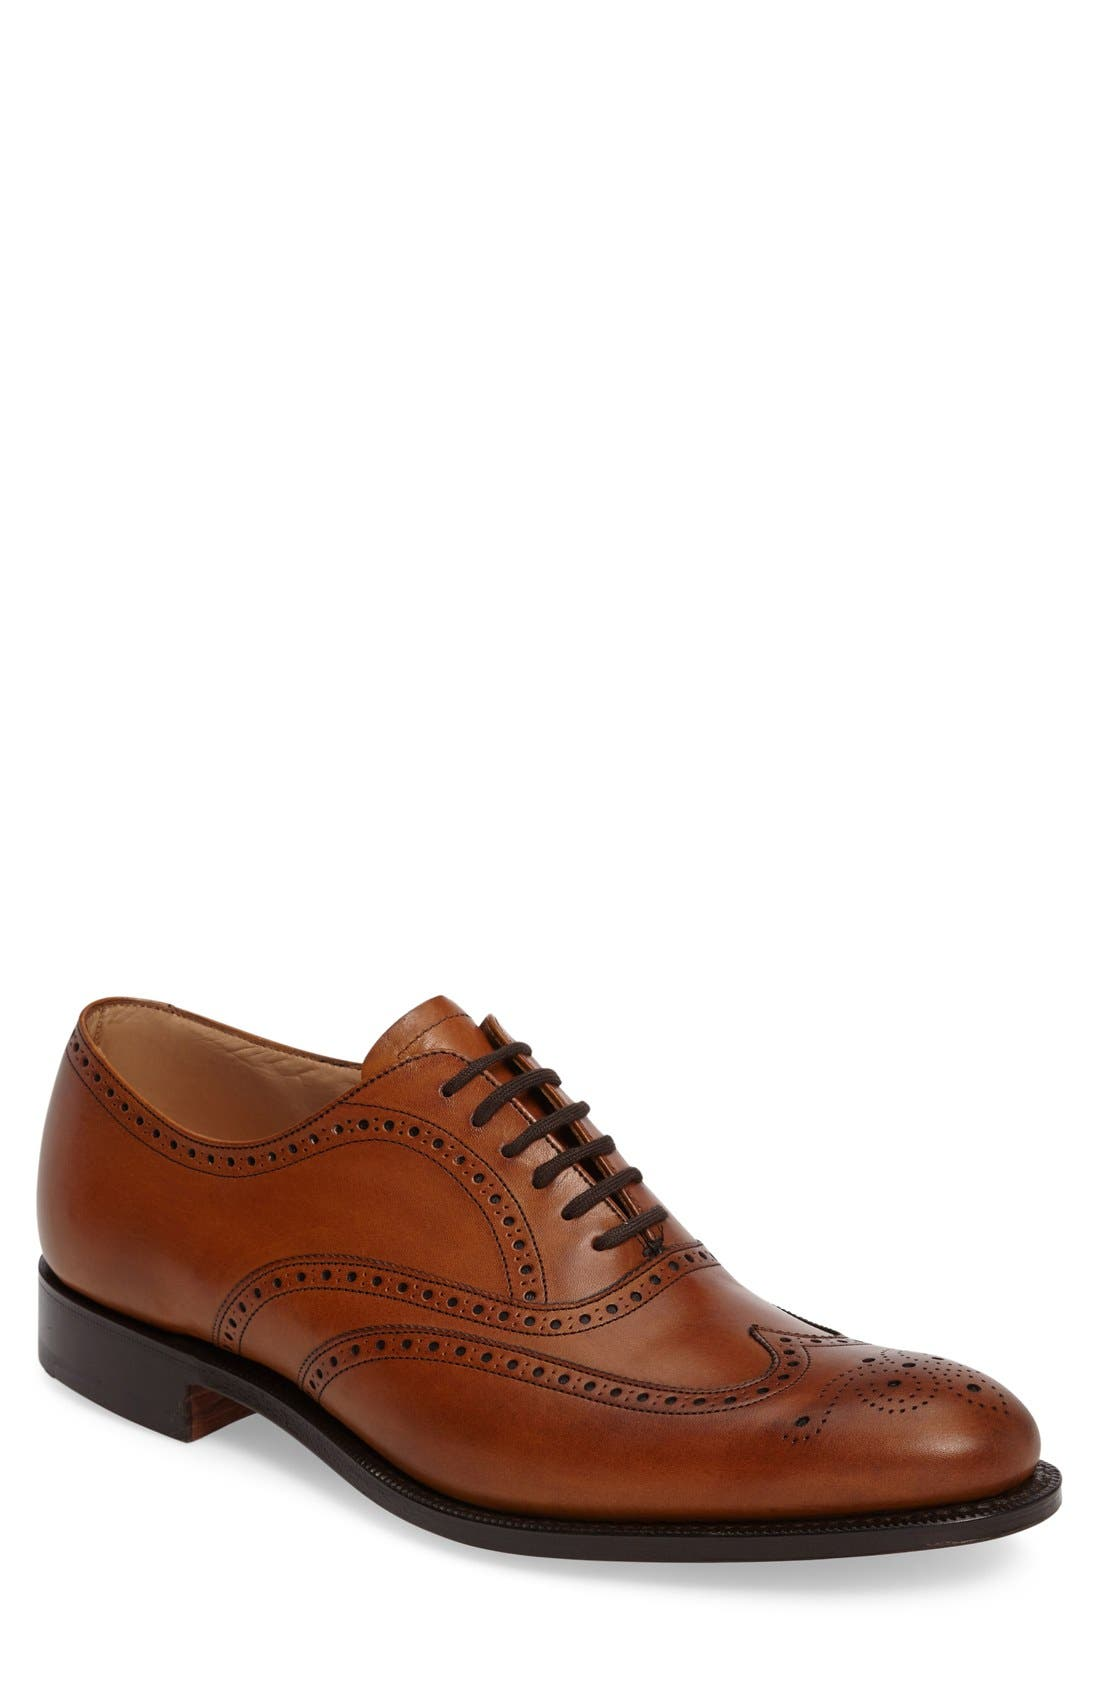 CHURCH'S 'Berlin' Wingtip Oxford